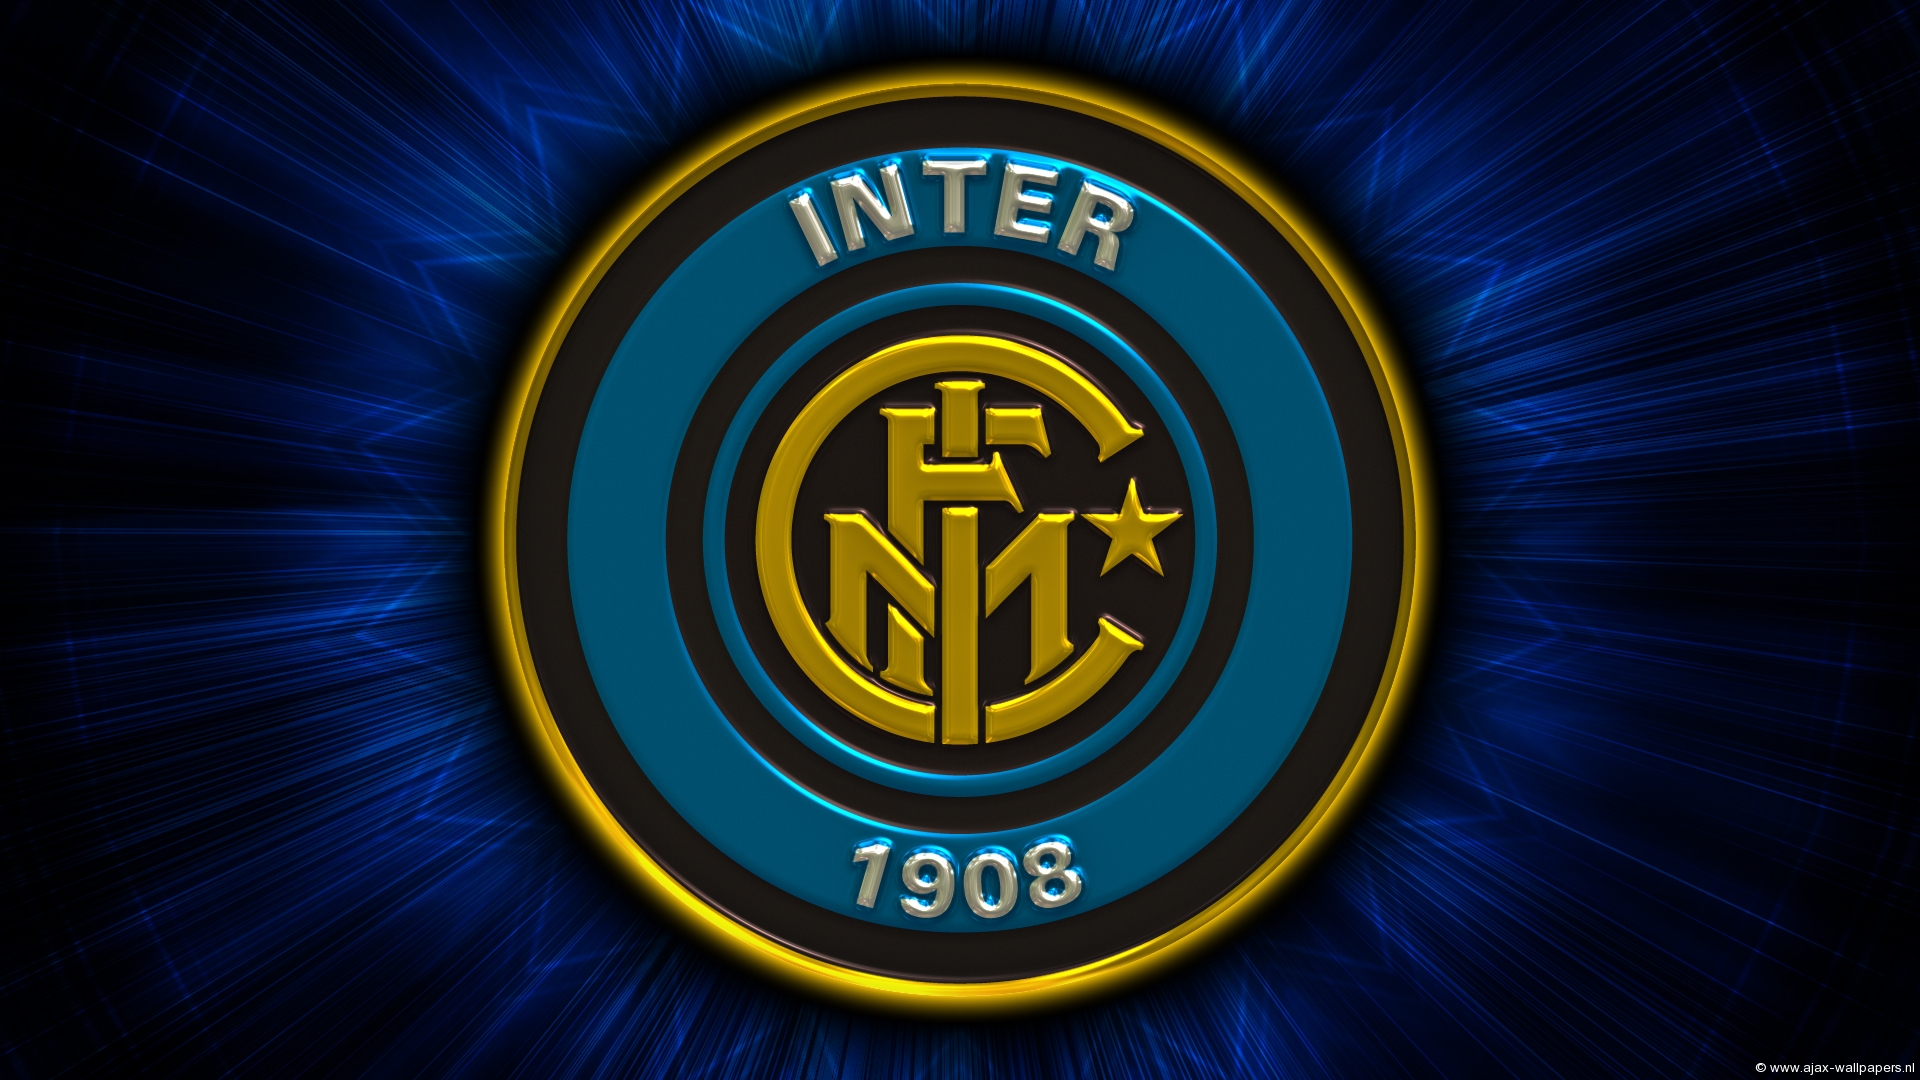 Emblem Inter Milan Logo Soccer Wallpaper Resolution 1920x1080 Id 1069384 Wallha Com